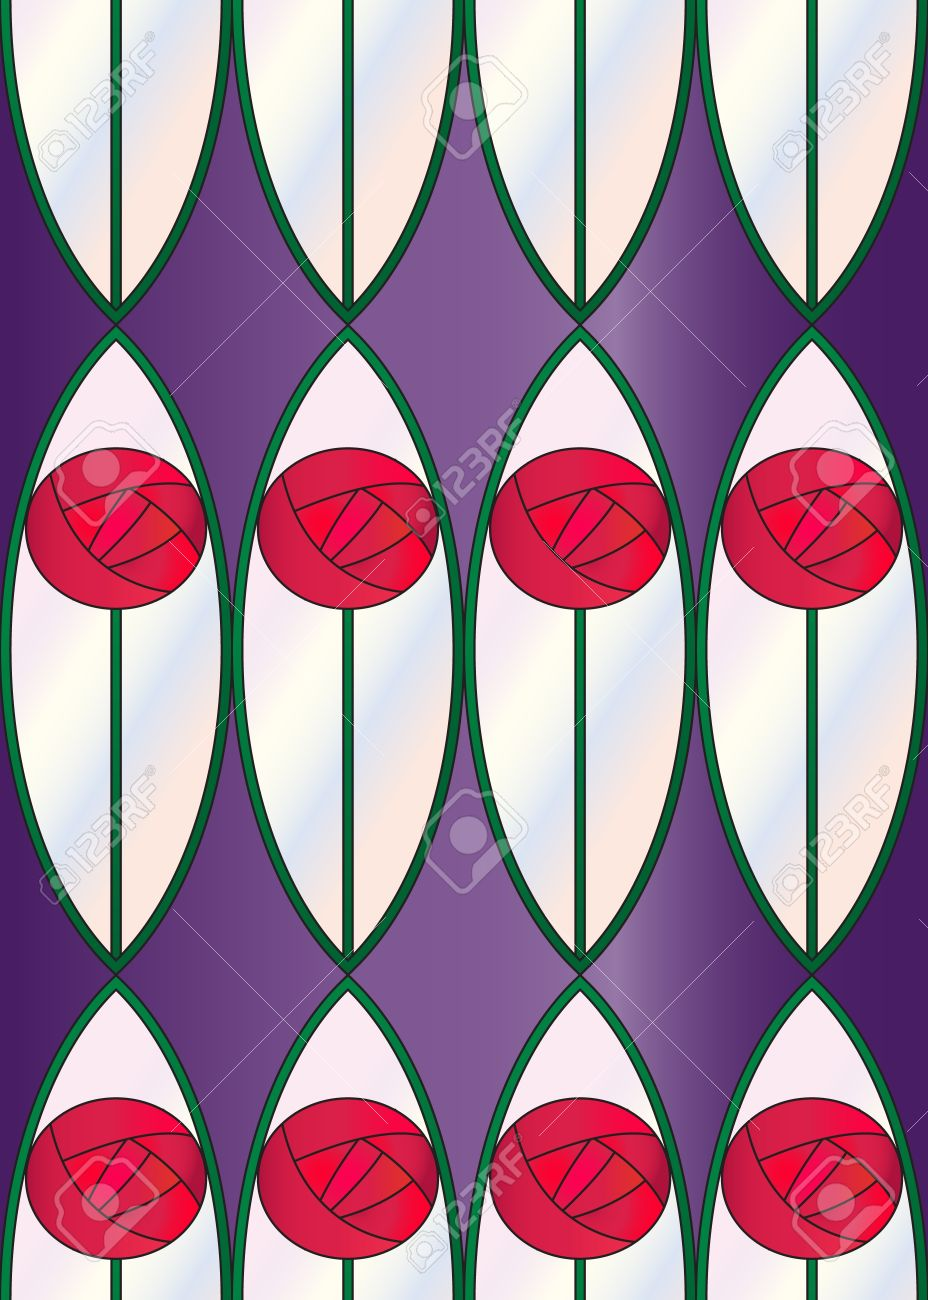 Charles Rennie Mackintosh Clipart Designs.